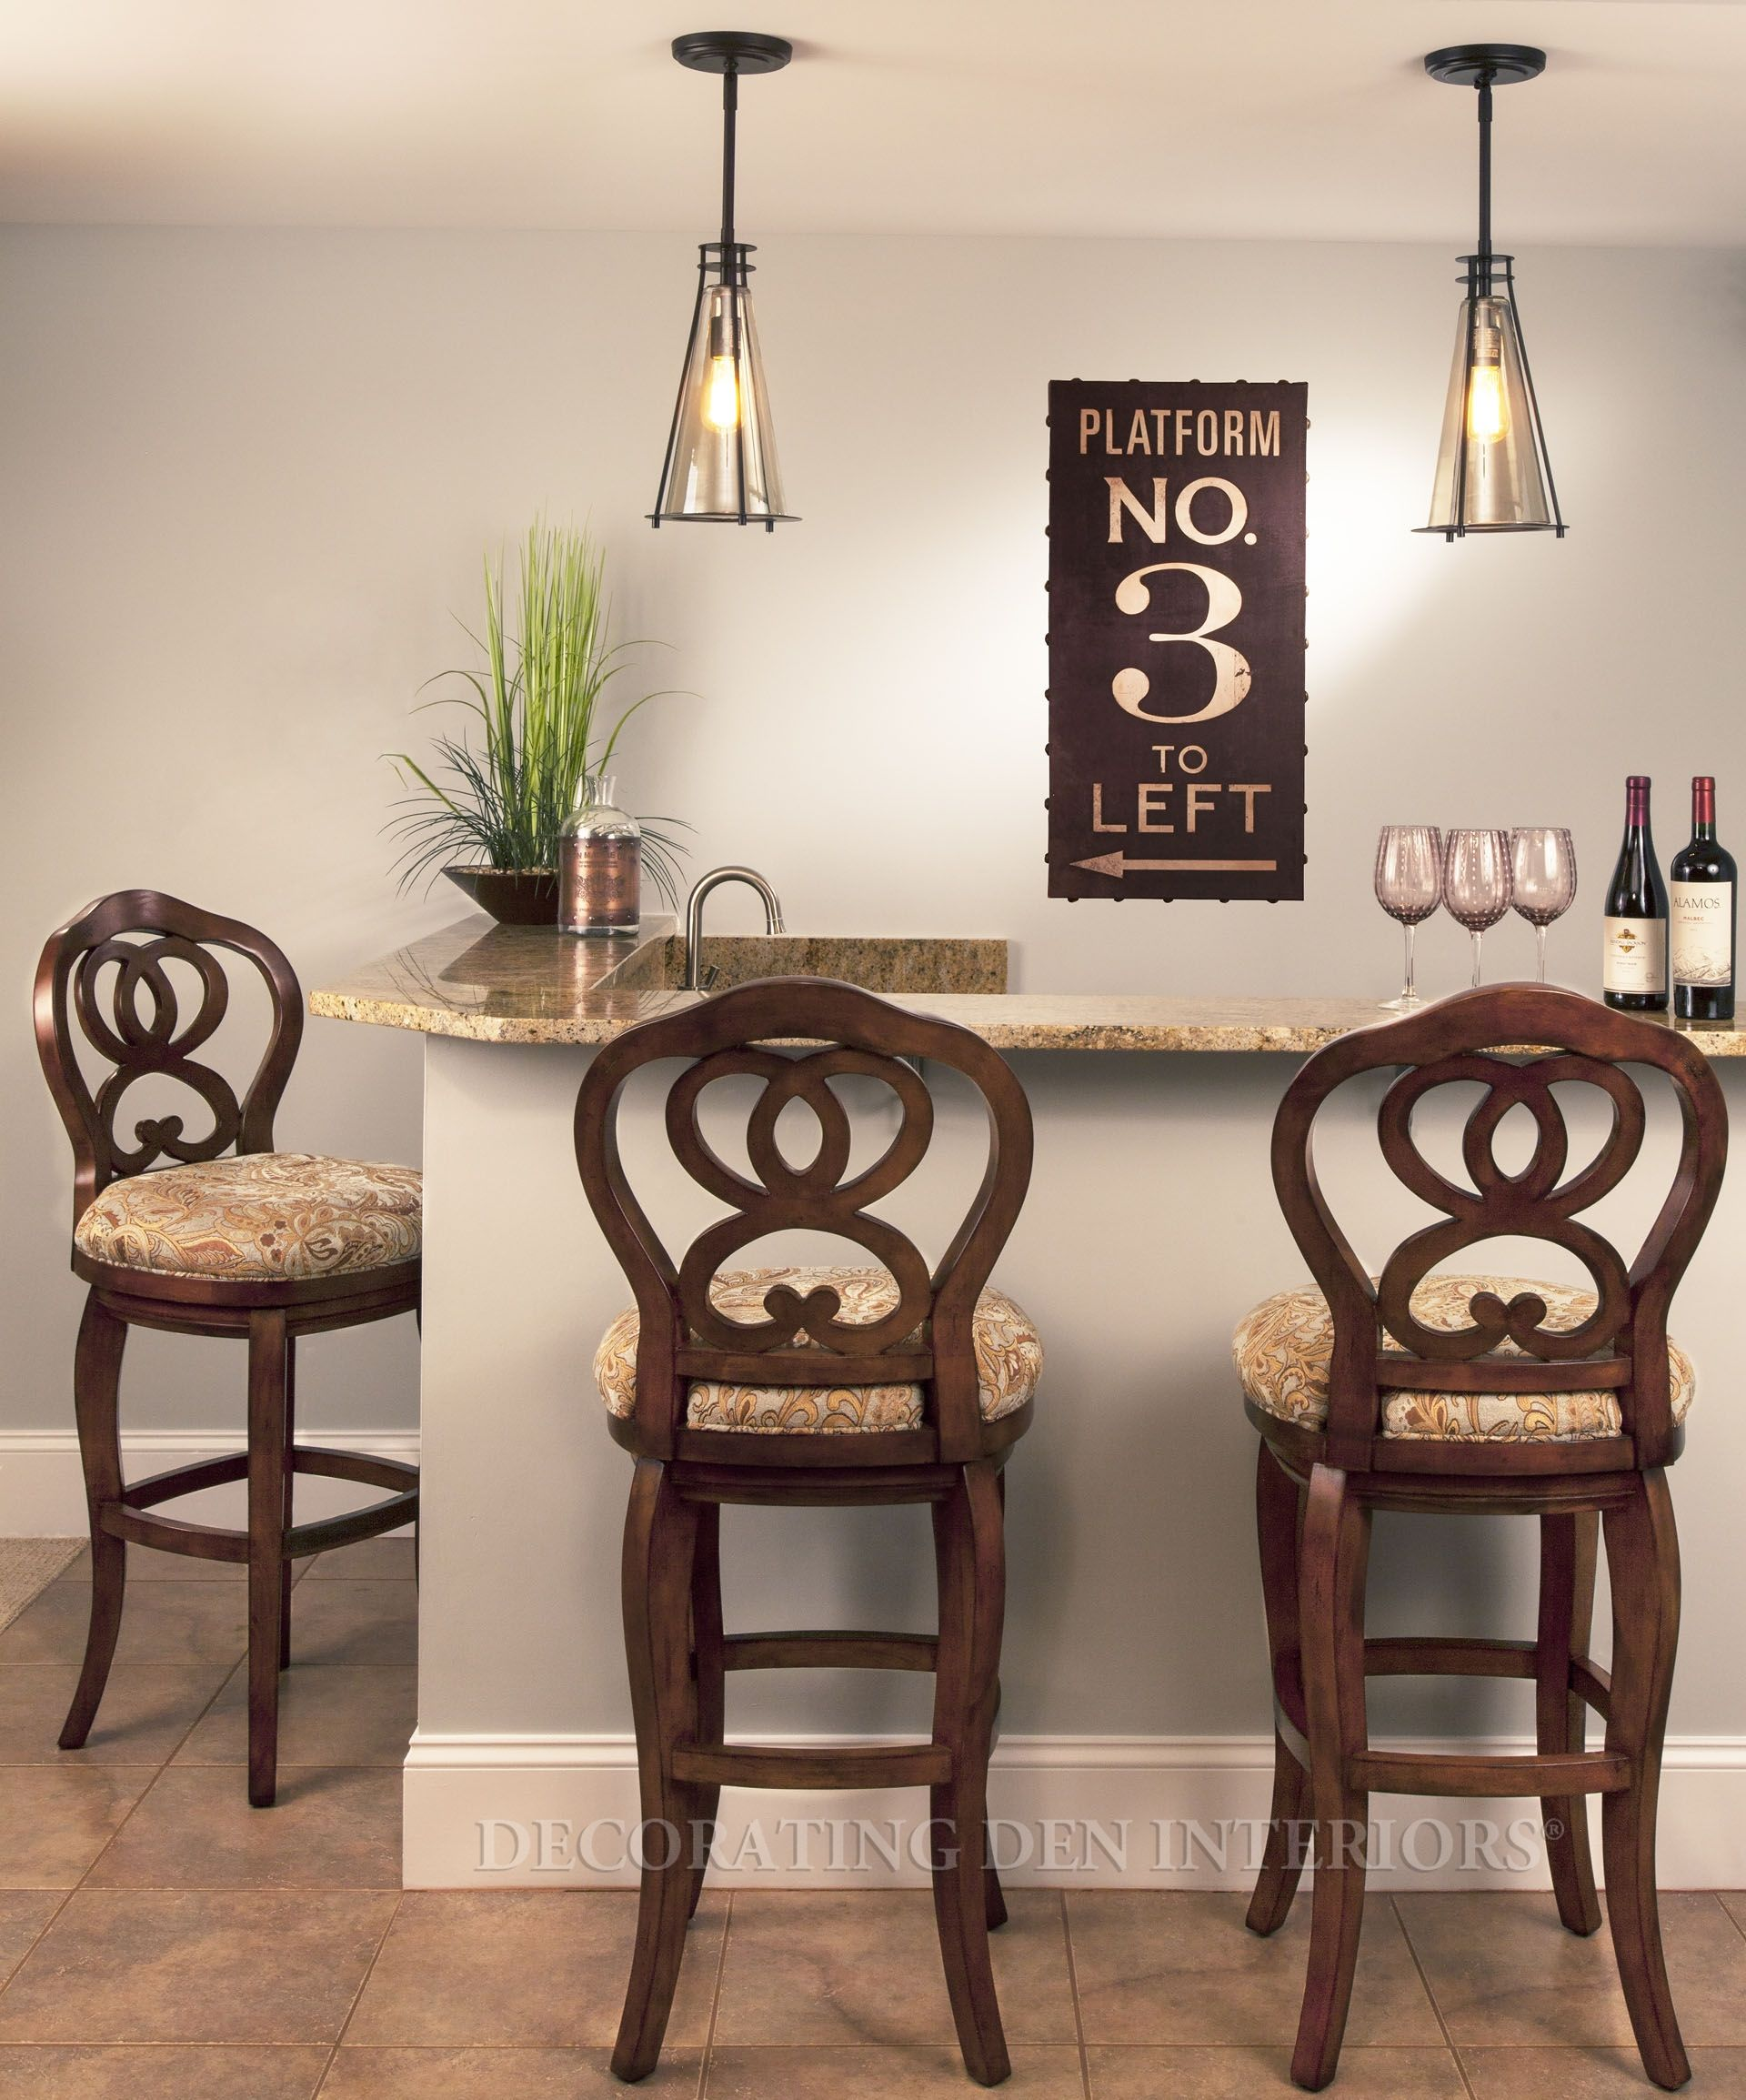 Pincpi Interiors  Decorating Den Interiors On Basement Reno Awesome Basement Dining Room Decorating Design